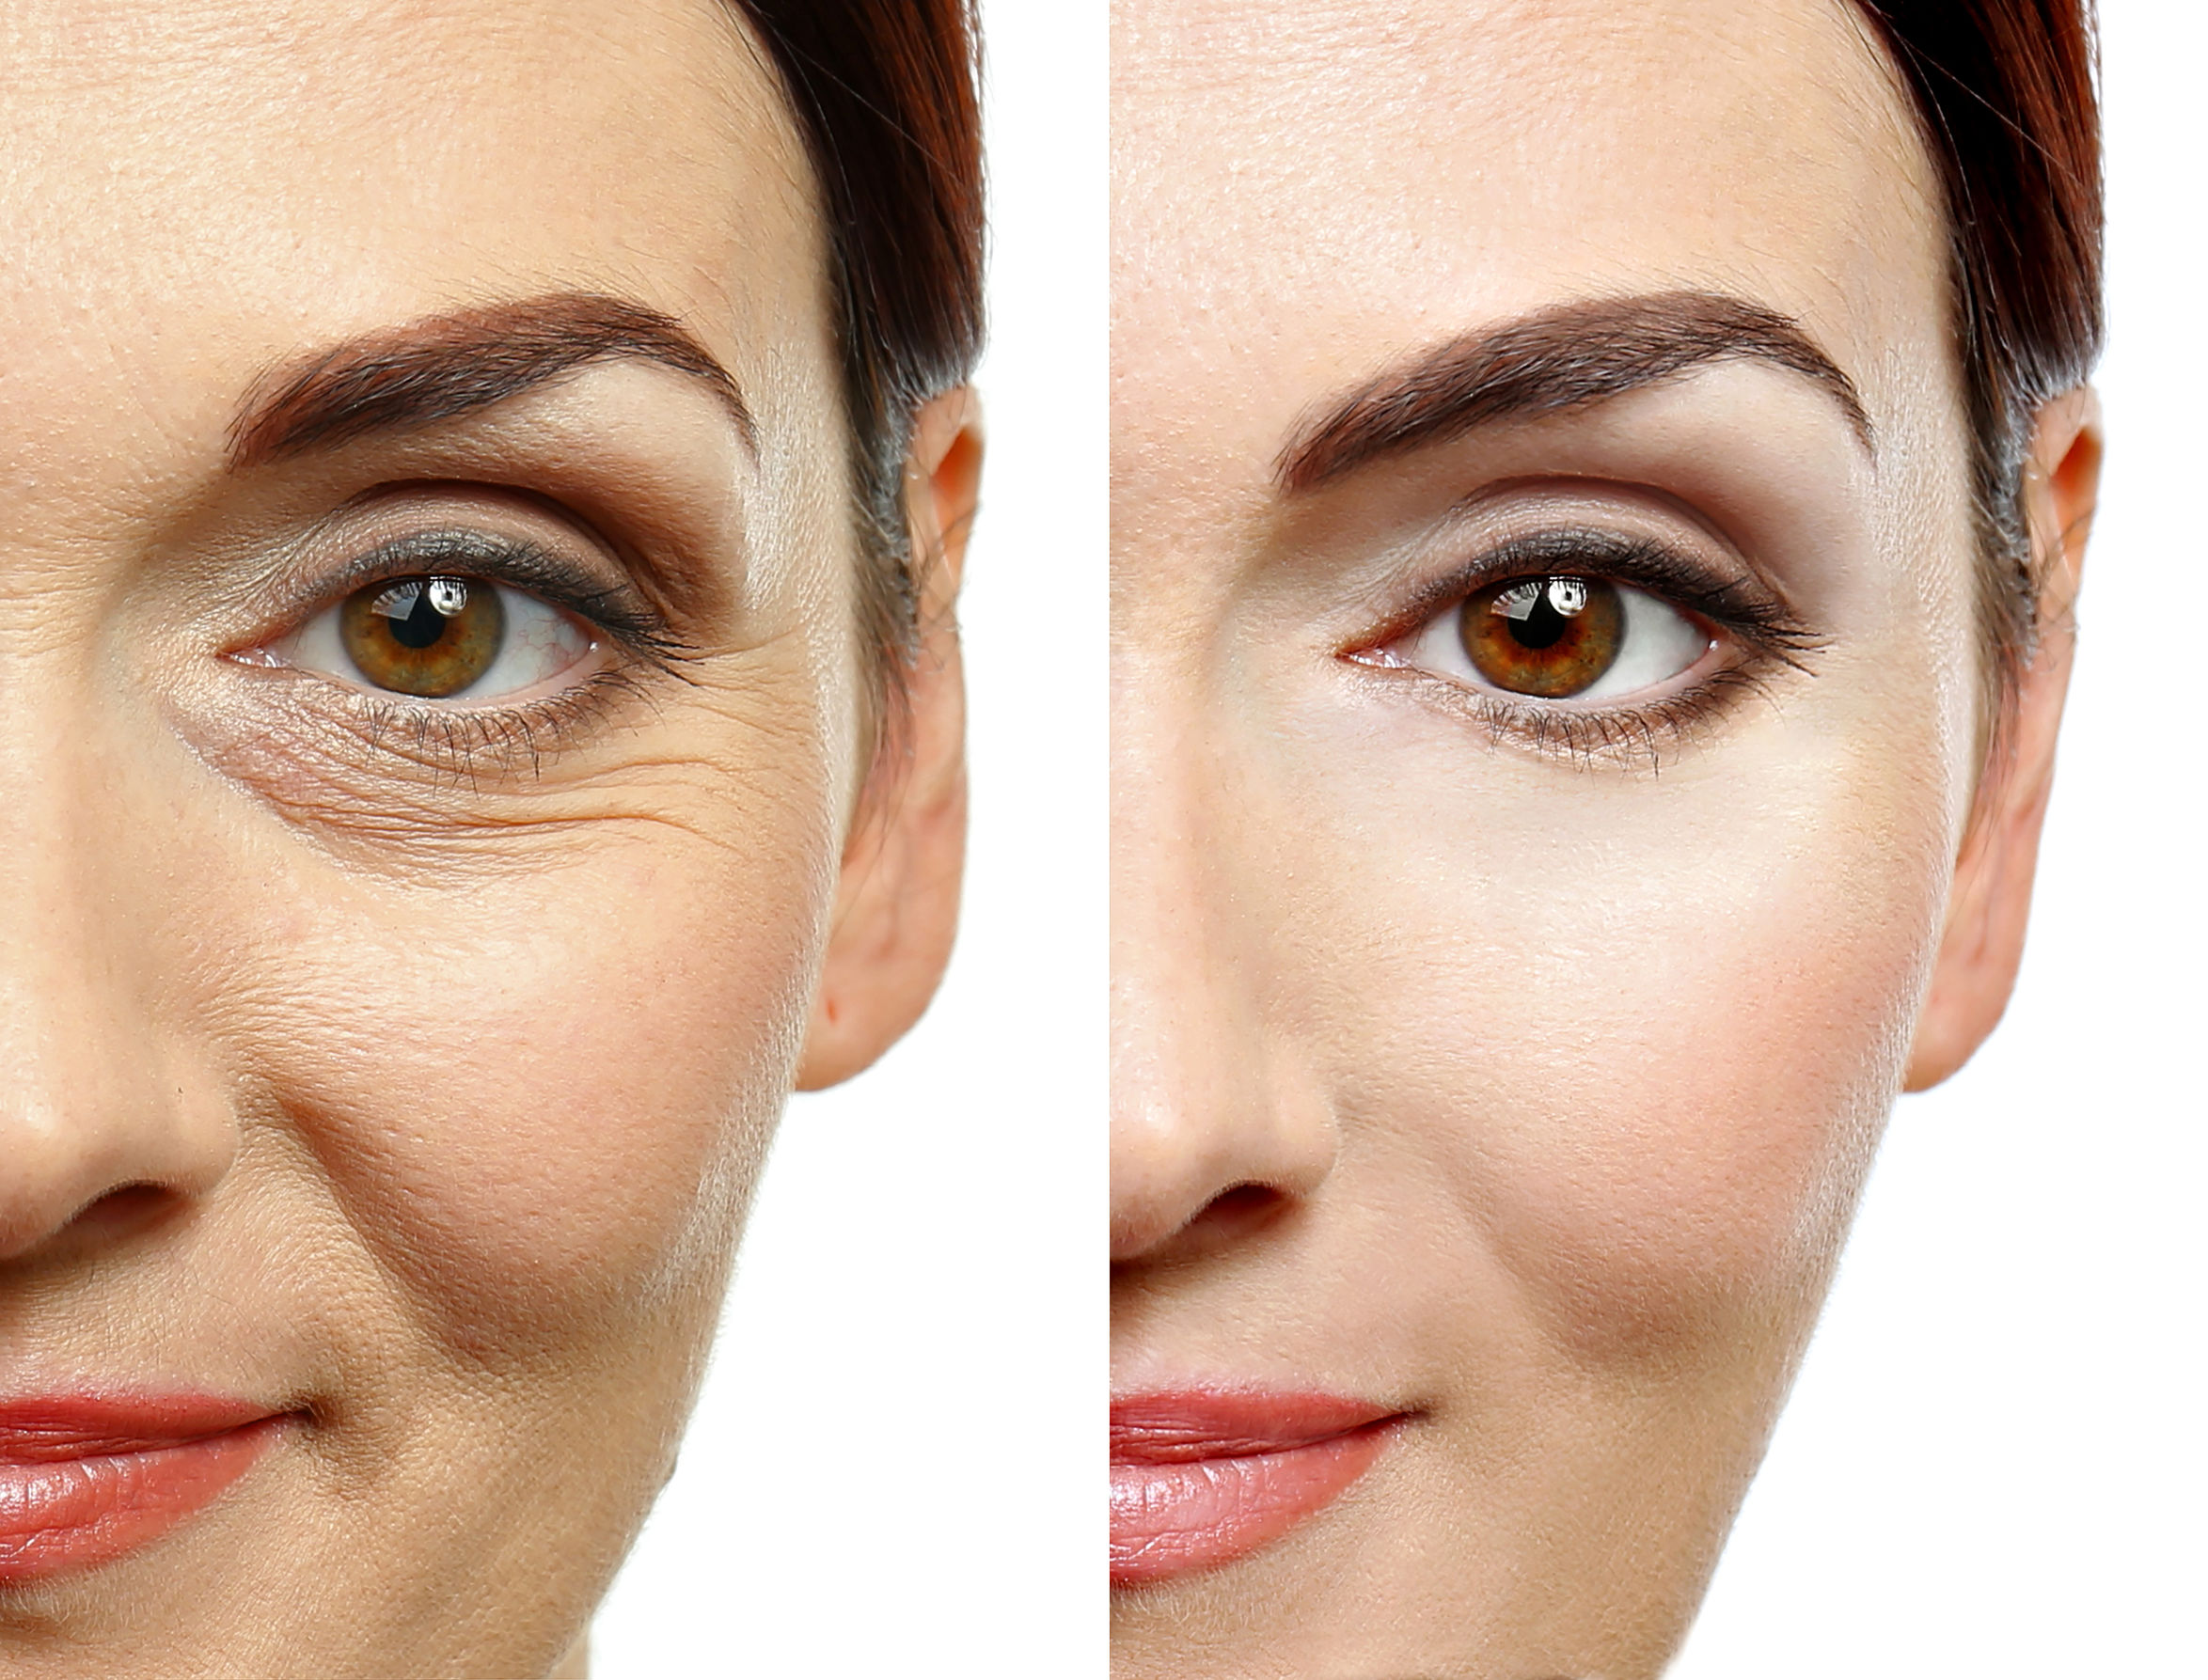 Anti Aging - Cosmetic Spa Services